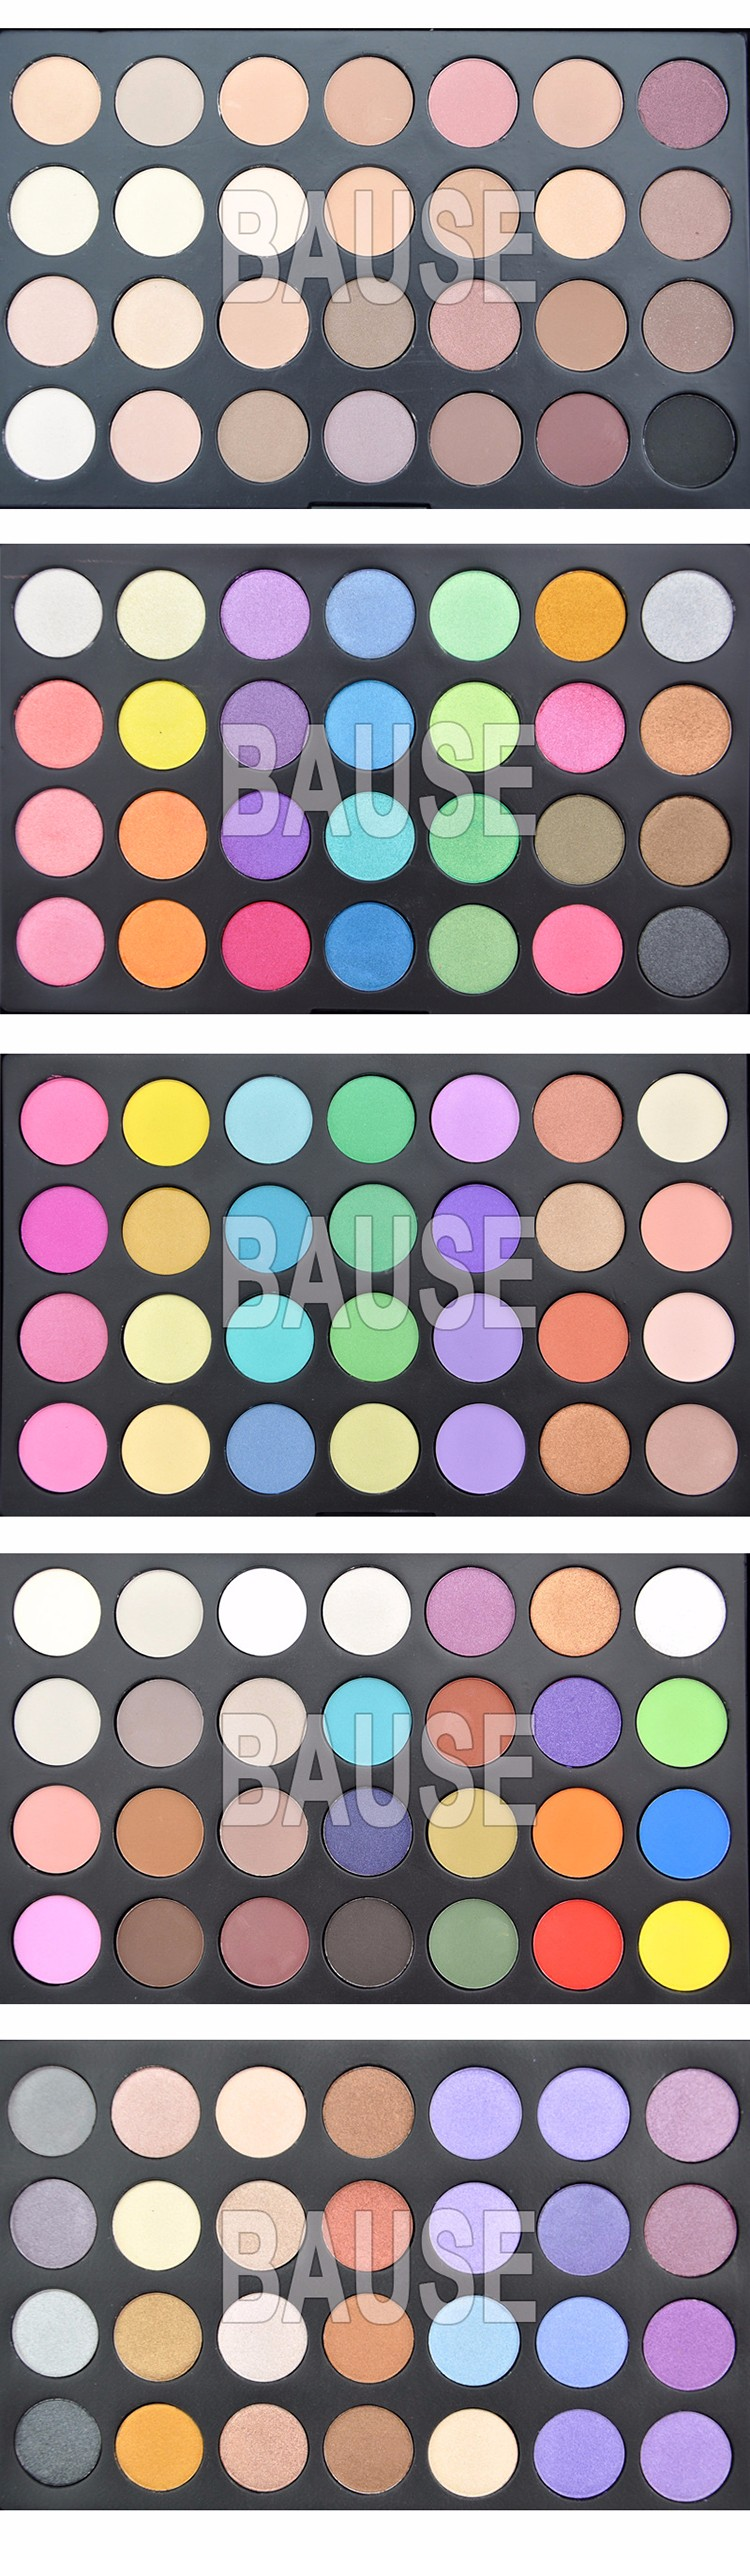 Chinese makeup brands 28 colors eye shadow palette oem korean makeup 28 color eyeshadow palette